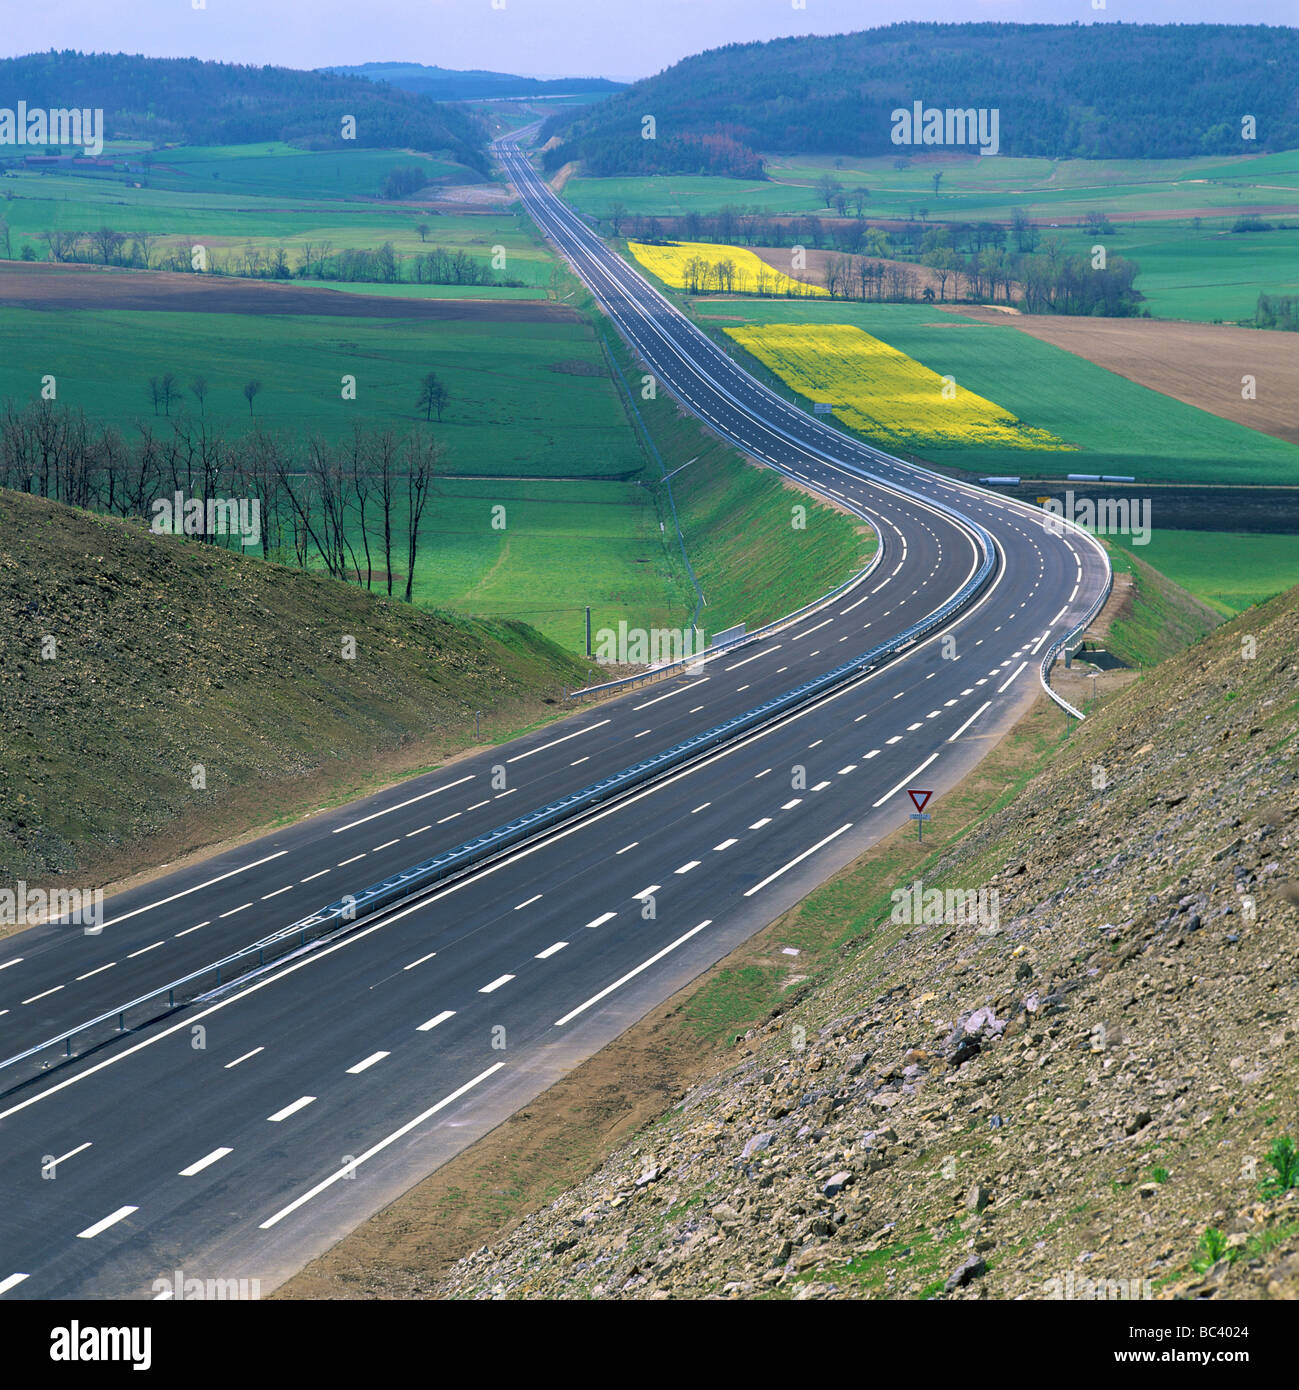 French autoroute motorway - Stock Image